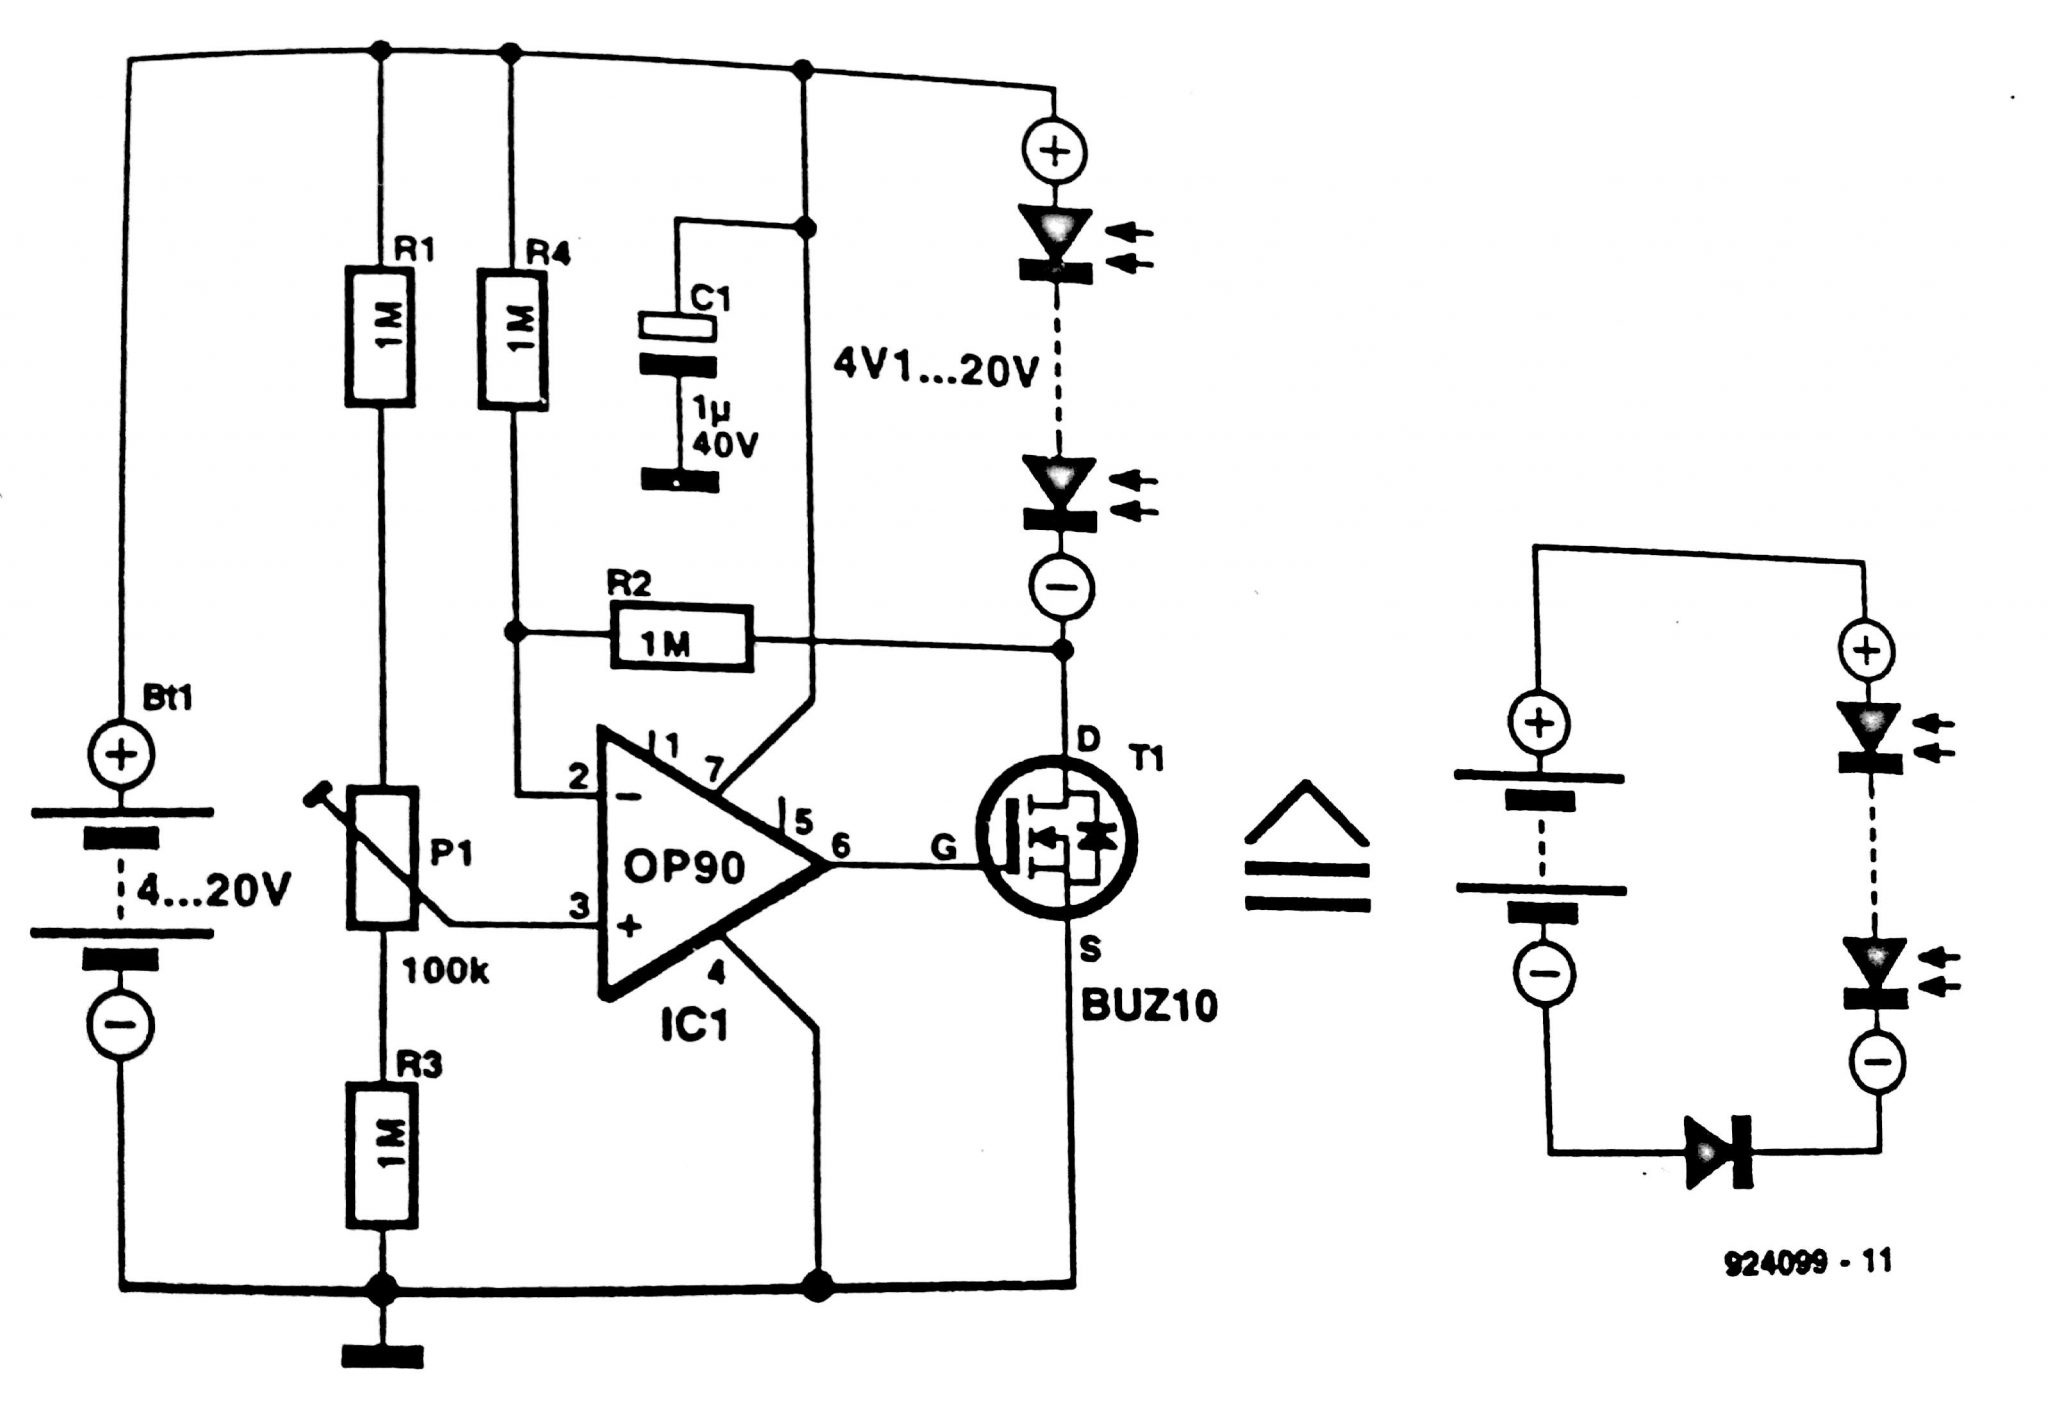 Power Supply Schematics Bn A